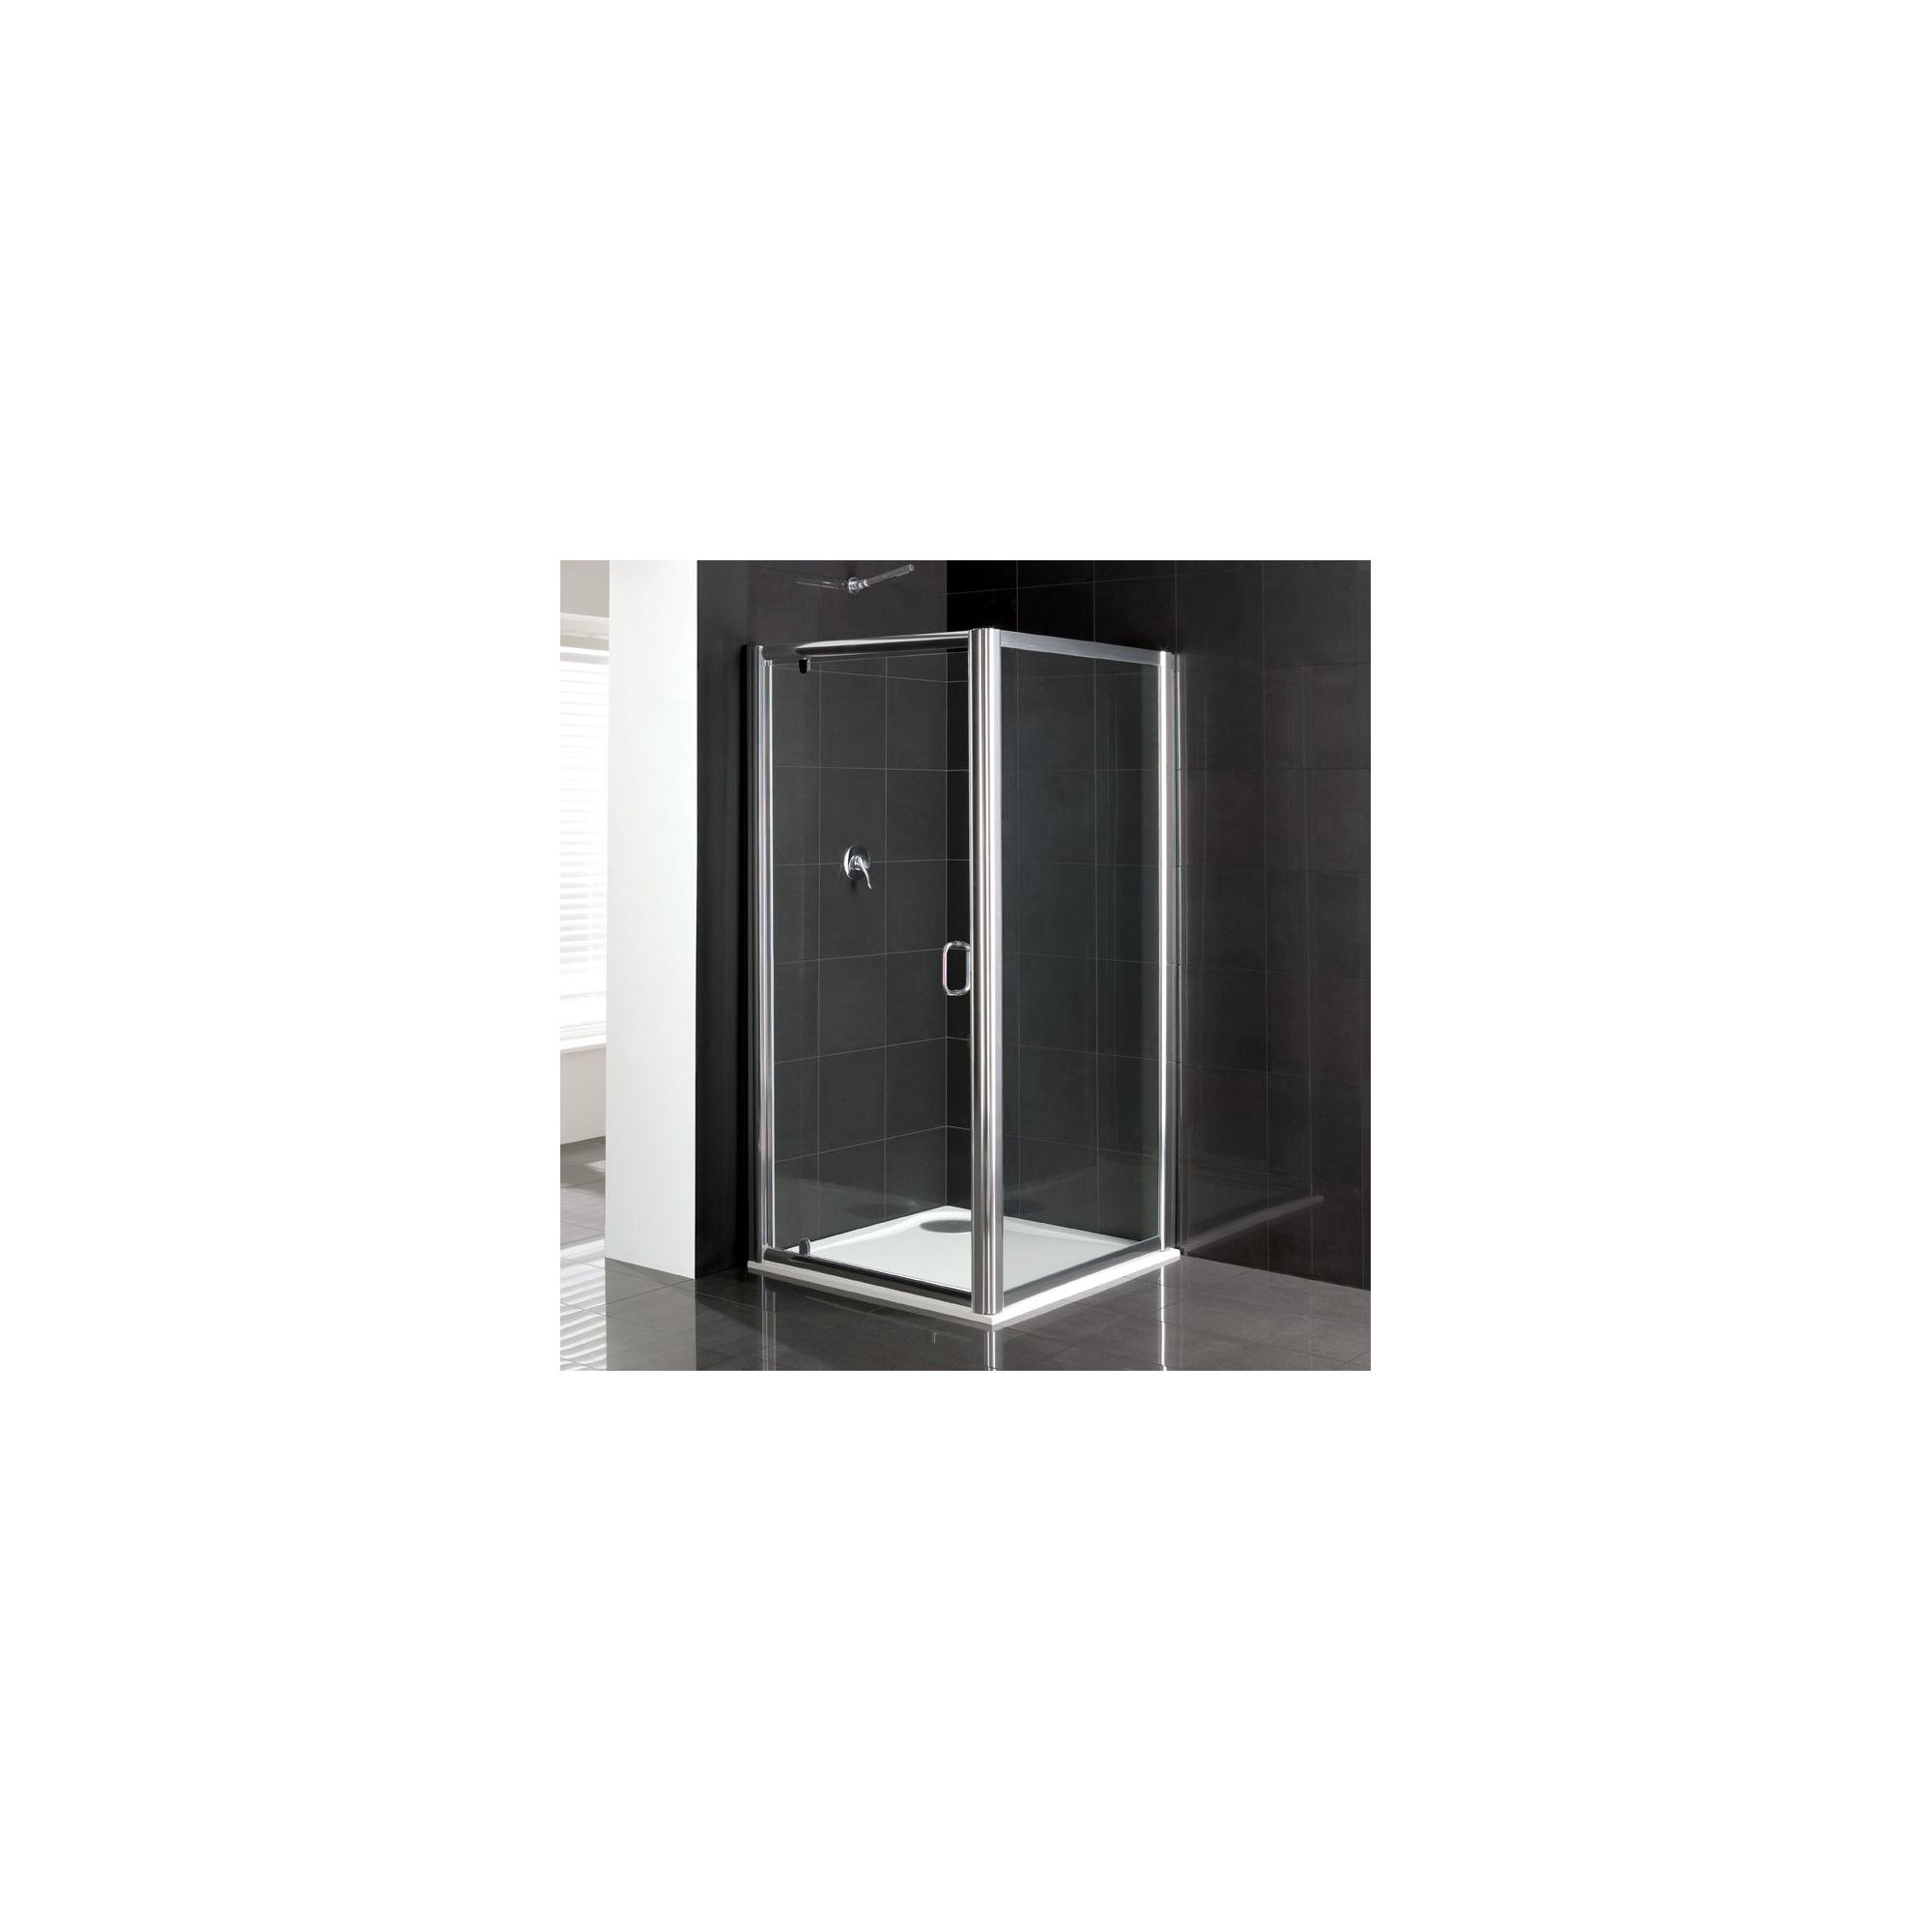 Duchy Elite Silver Pivot Door Shower Enclosure with Towel Rail, 900mm x 700mm, Standard Tray, 6mm Glass at Tesco Direct